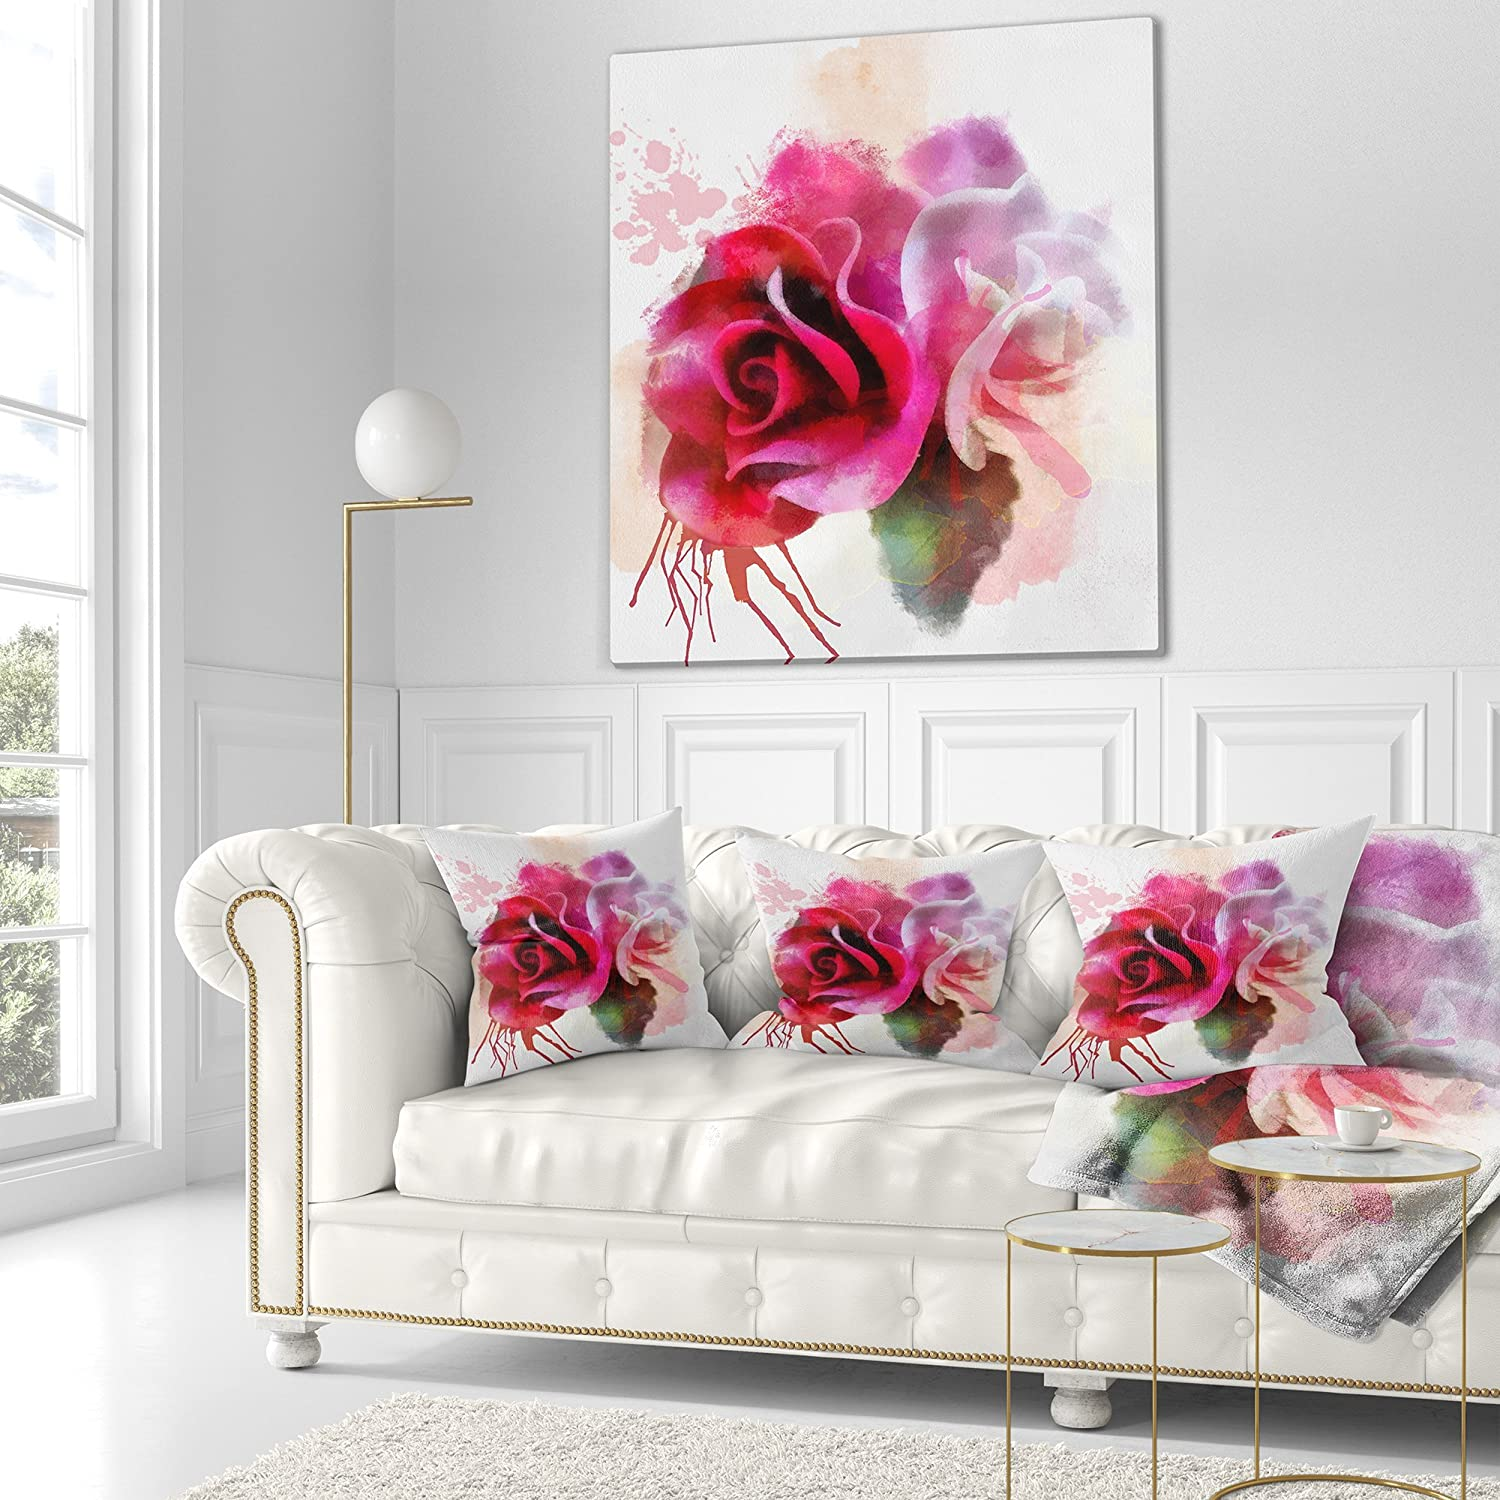 Designart Cu13667 18 18 White Red Roses With Color Splashes Floral Throw Cushion Pillow Cover For